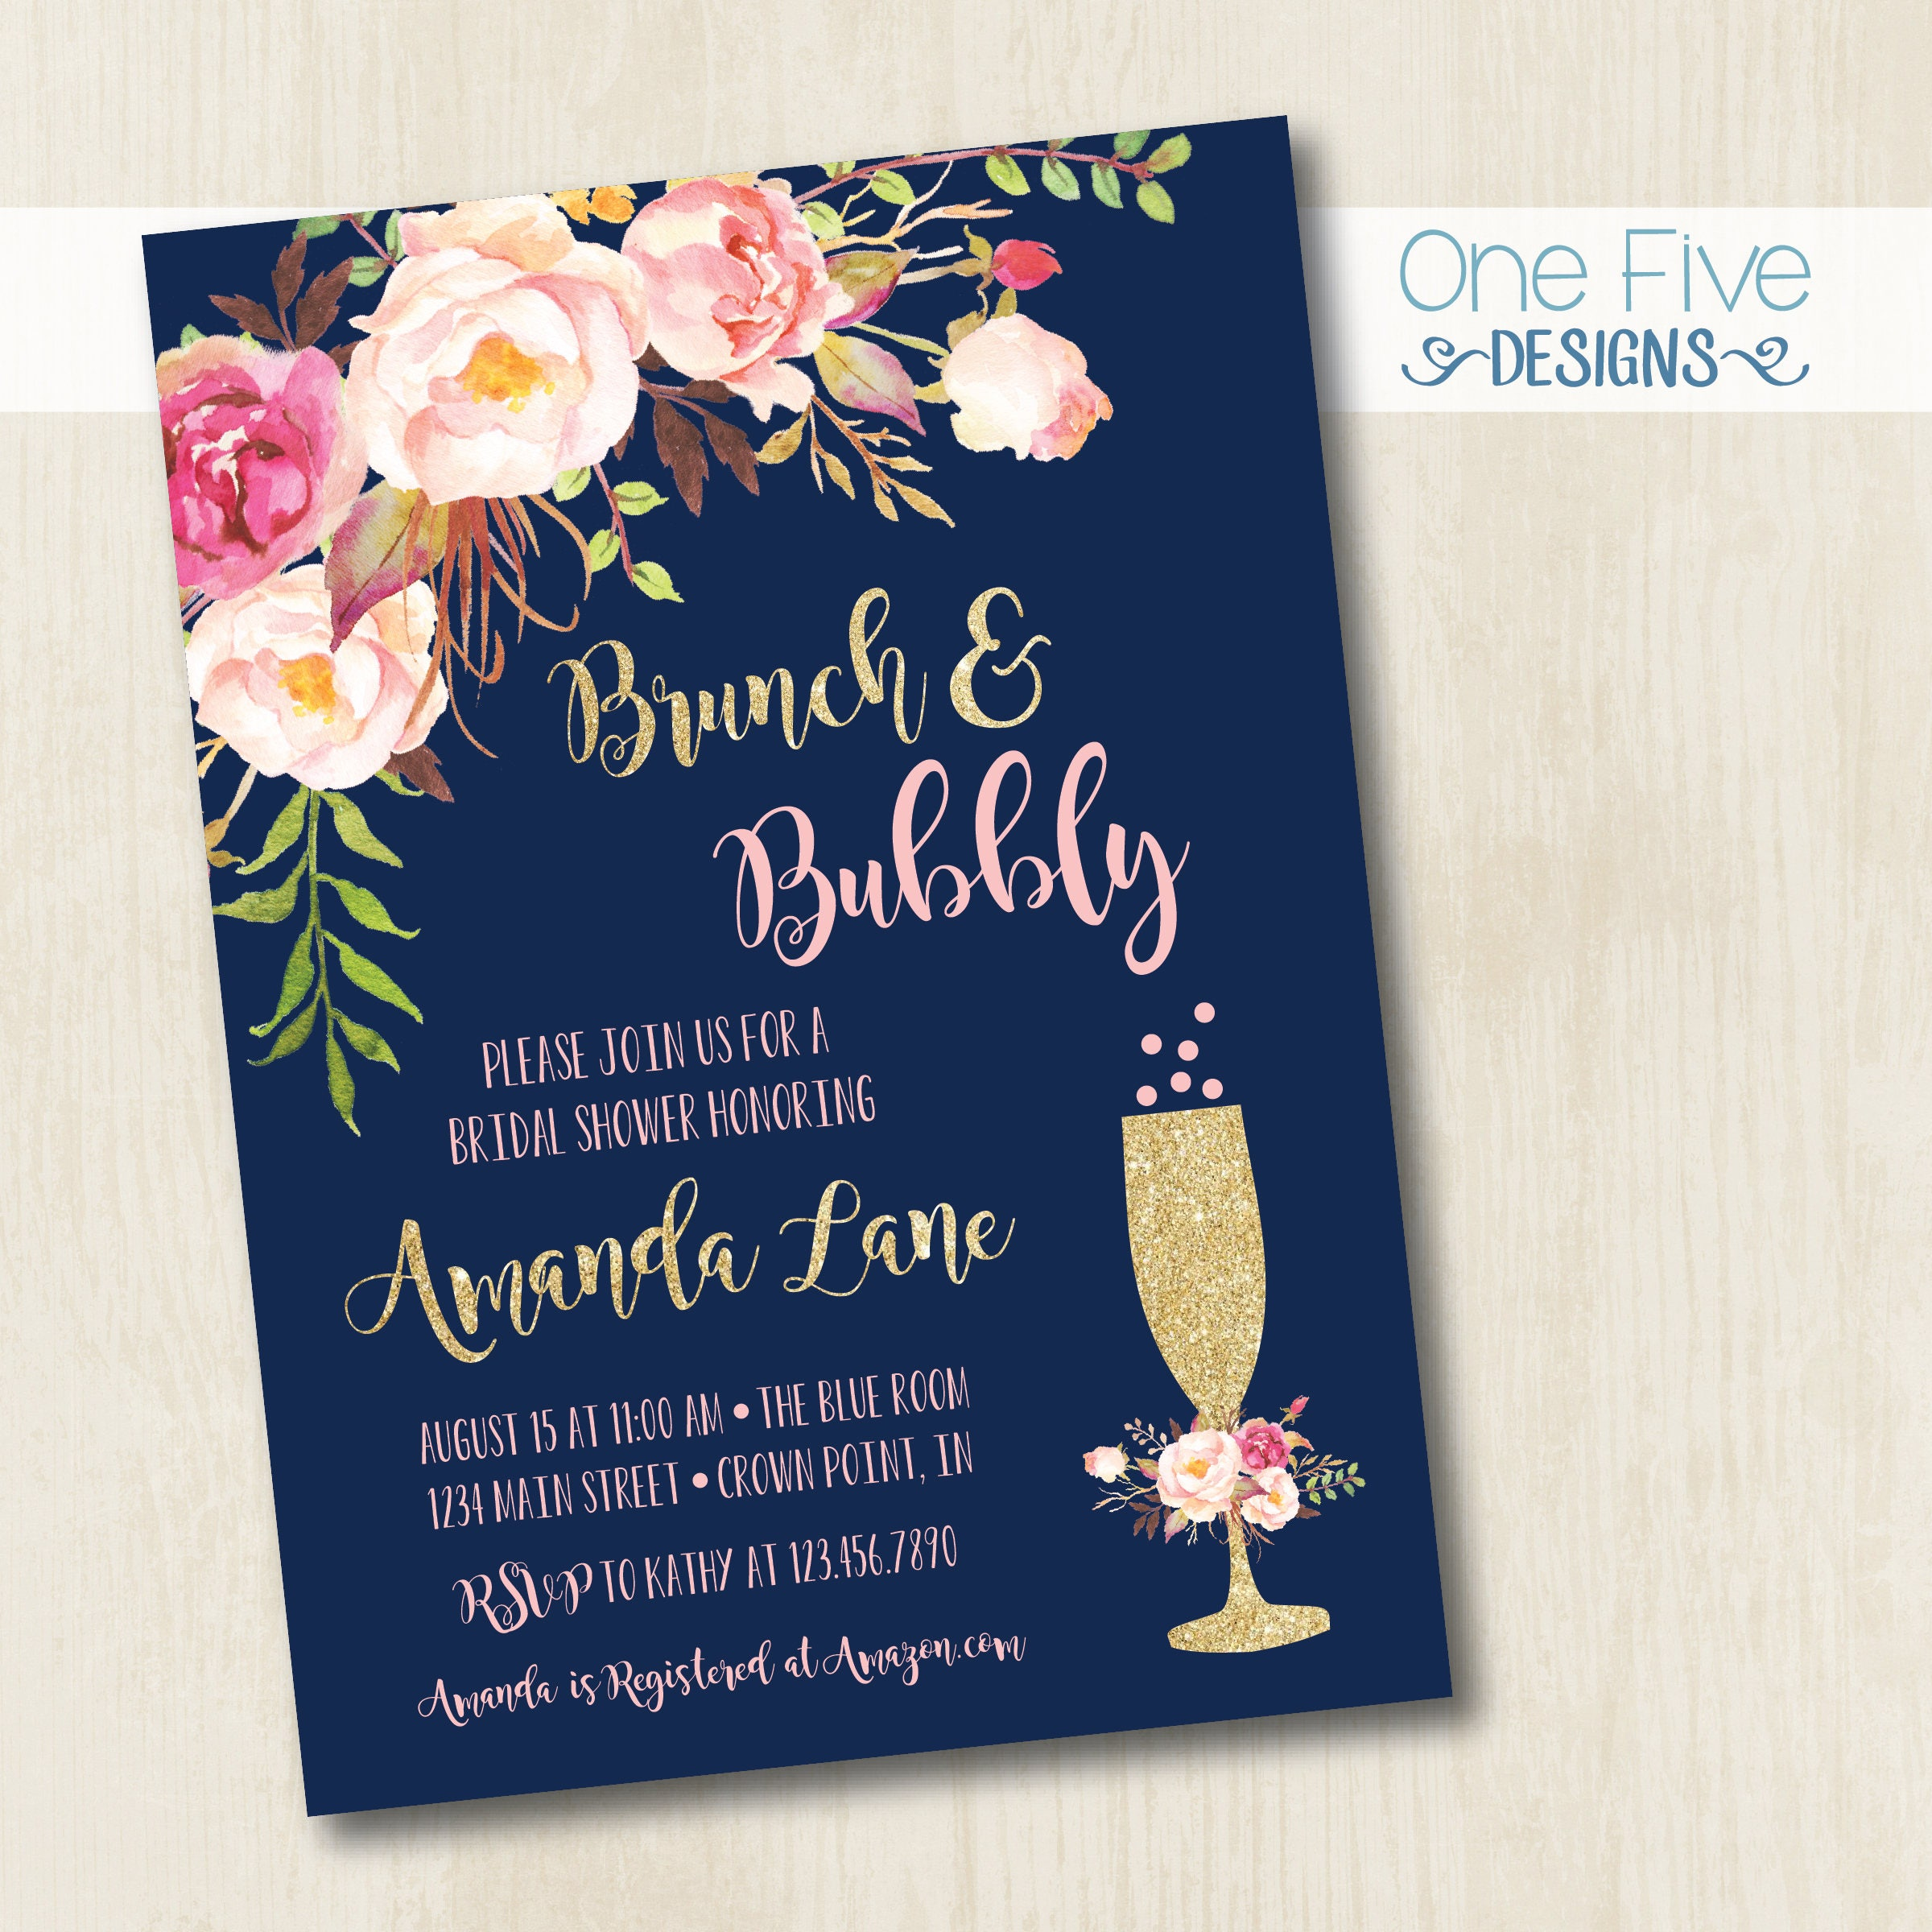 Brunch & Bubbly Bridal Shower Invitation With Flowers Navy